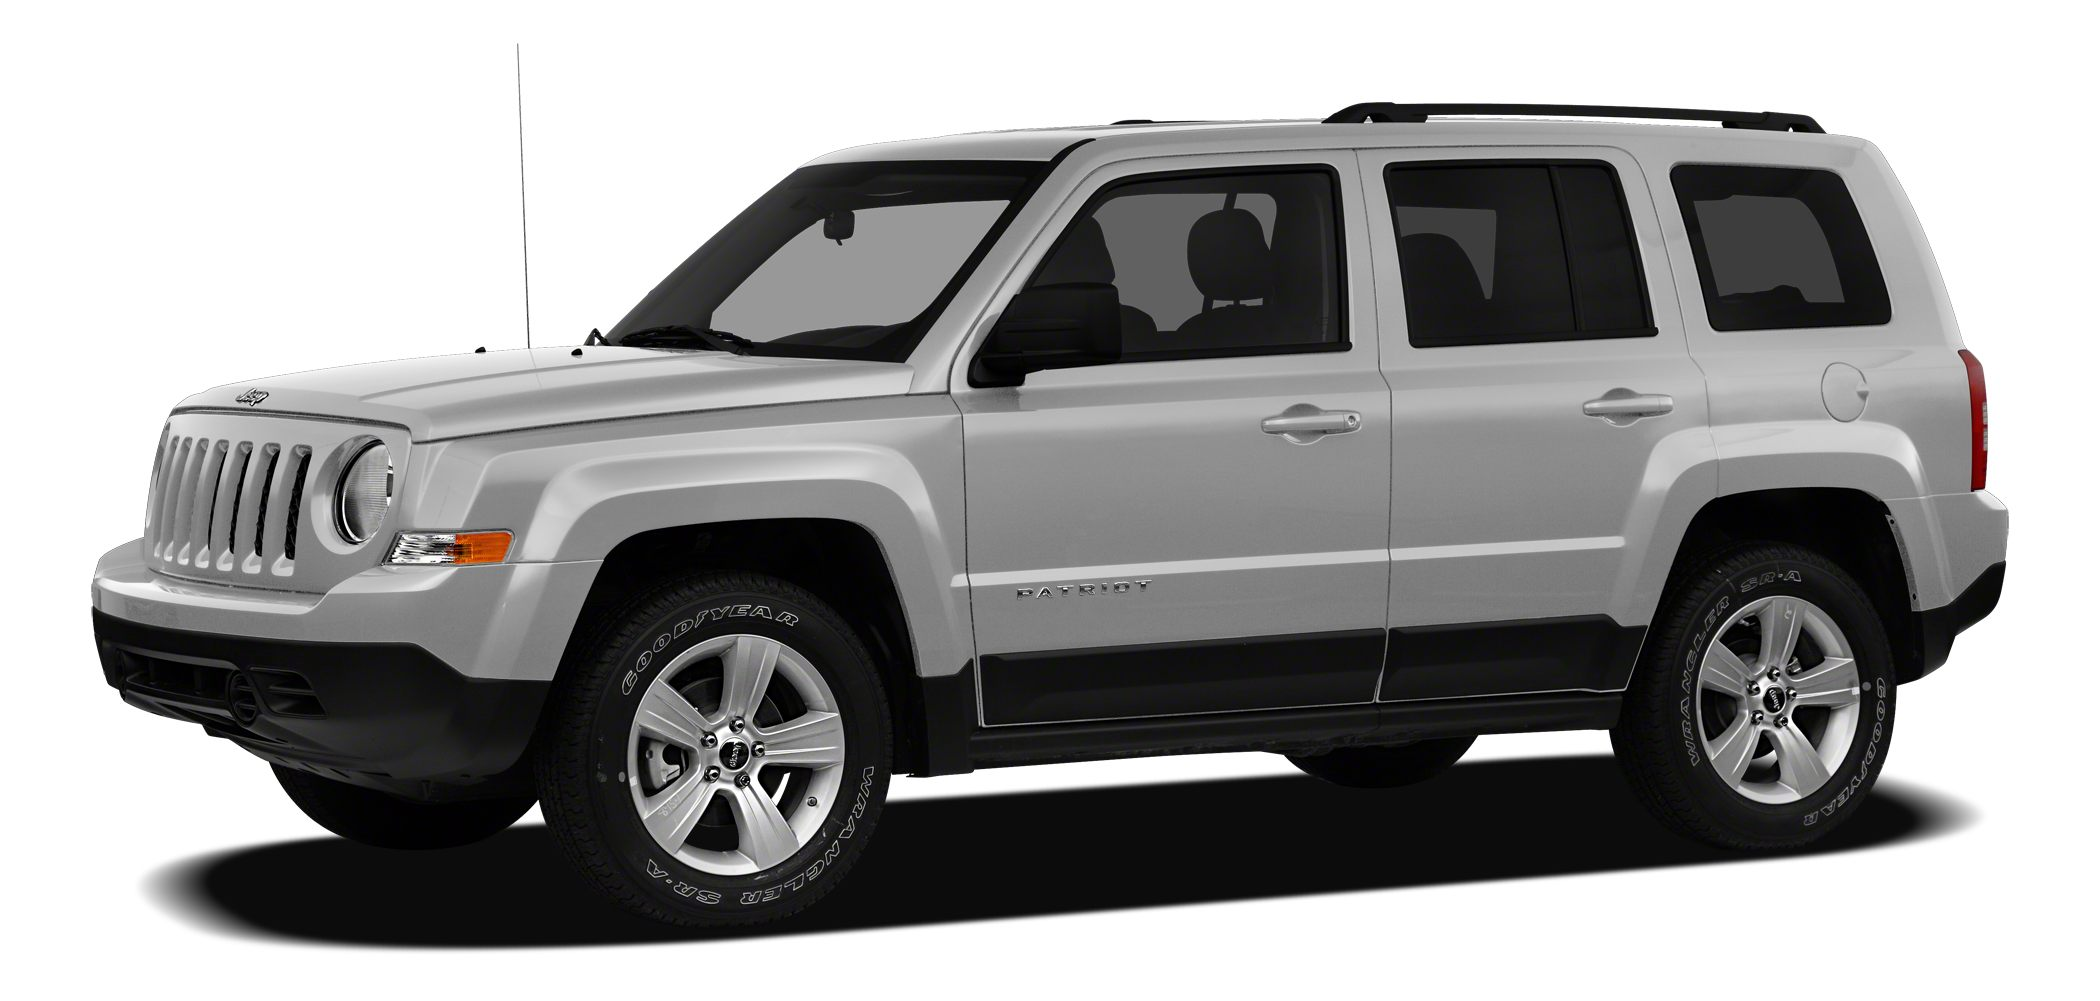 2011 Jeep Patriot Latitude X Miles 82222Color Bright Silver Clearcoat Metallic Stock C16024A